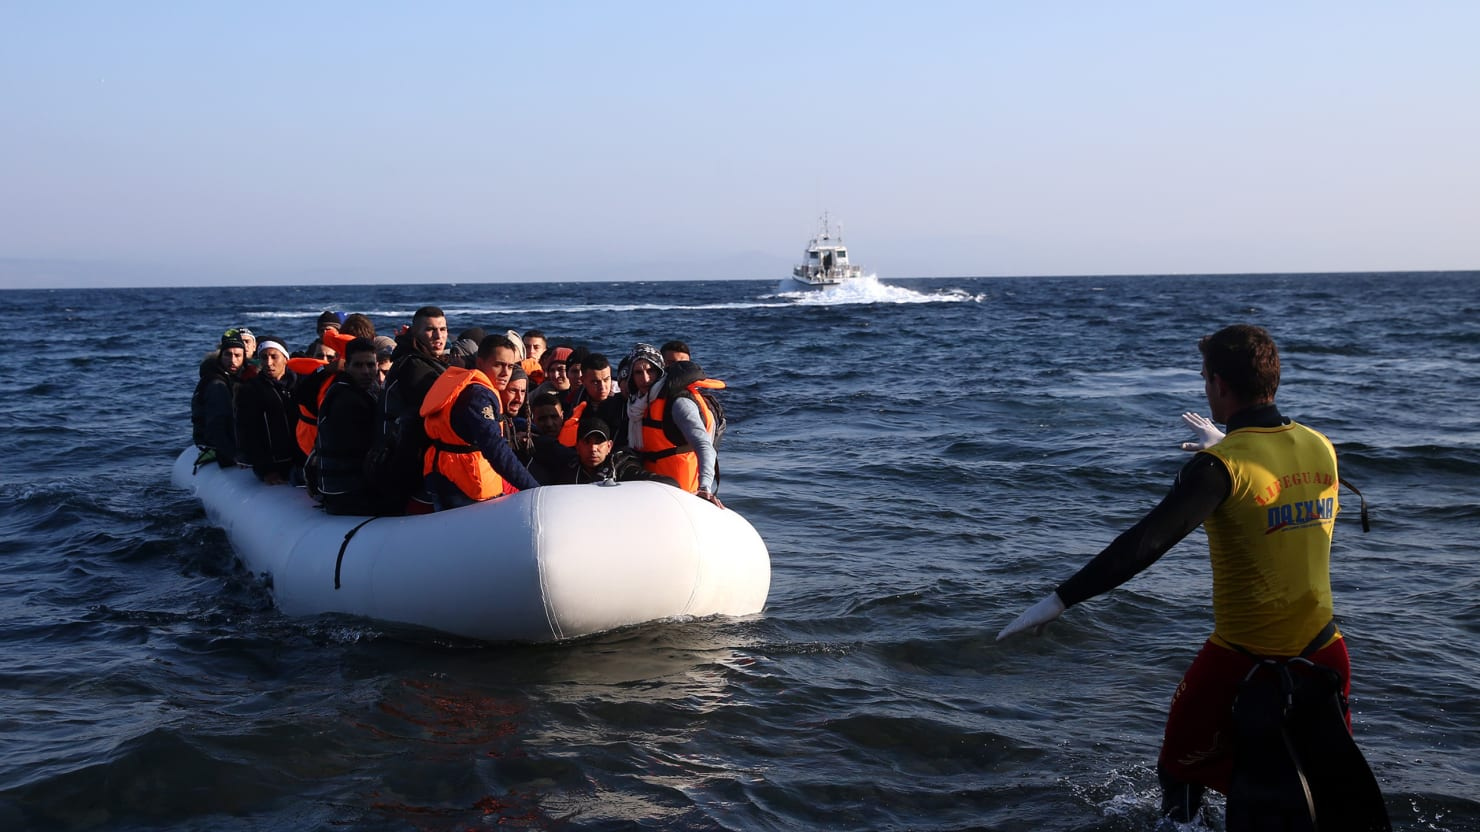 Migrants to Europe Have Suddenly Gone Missing